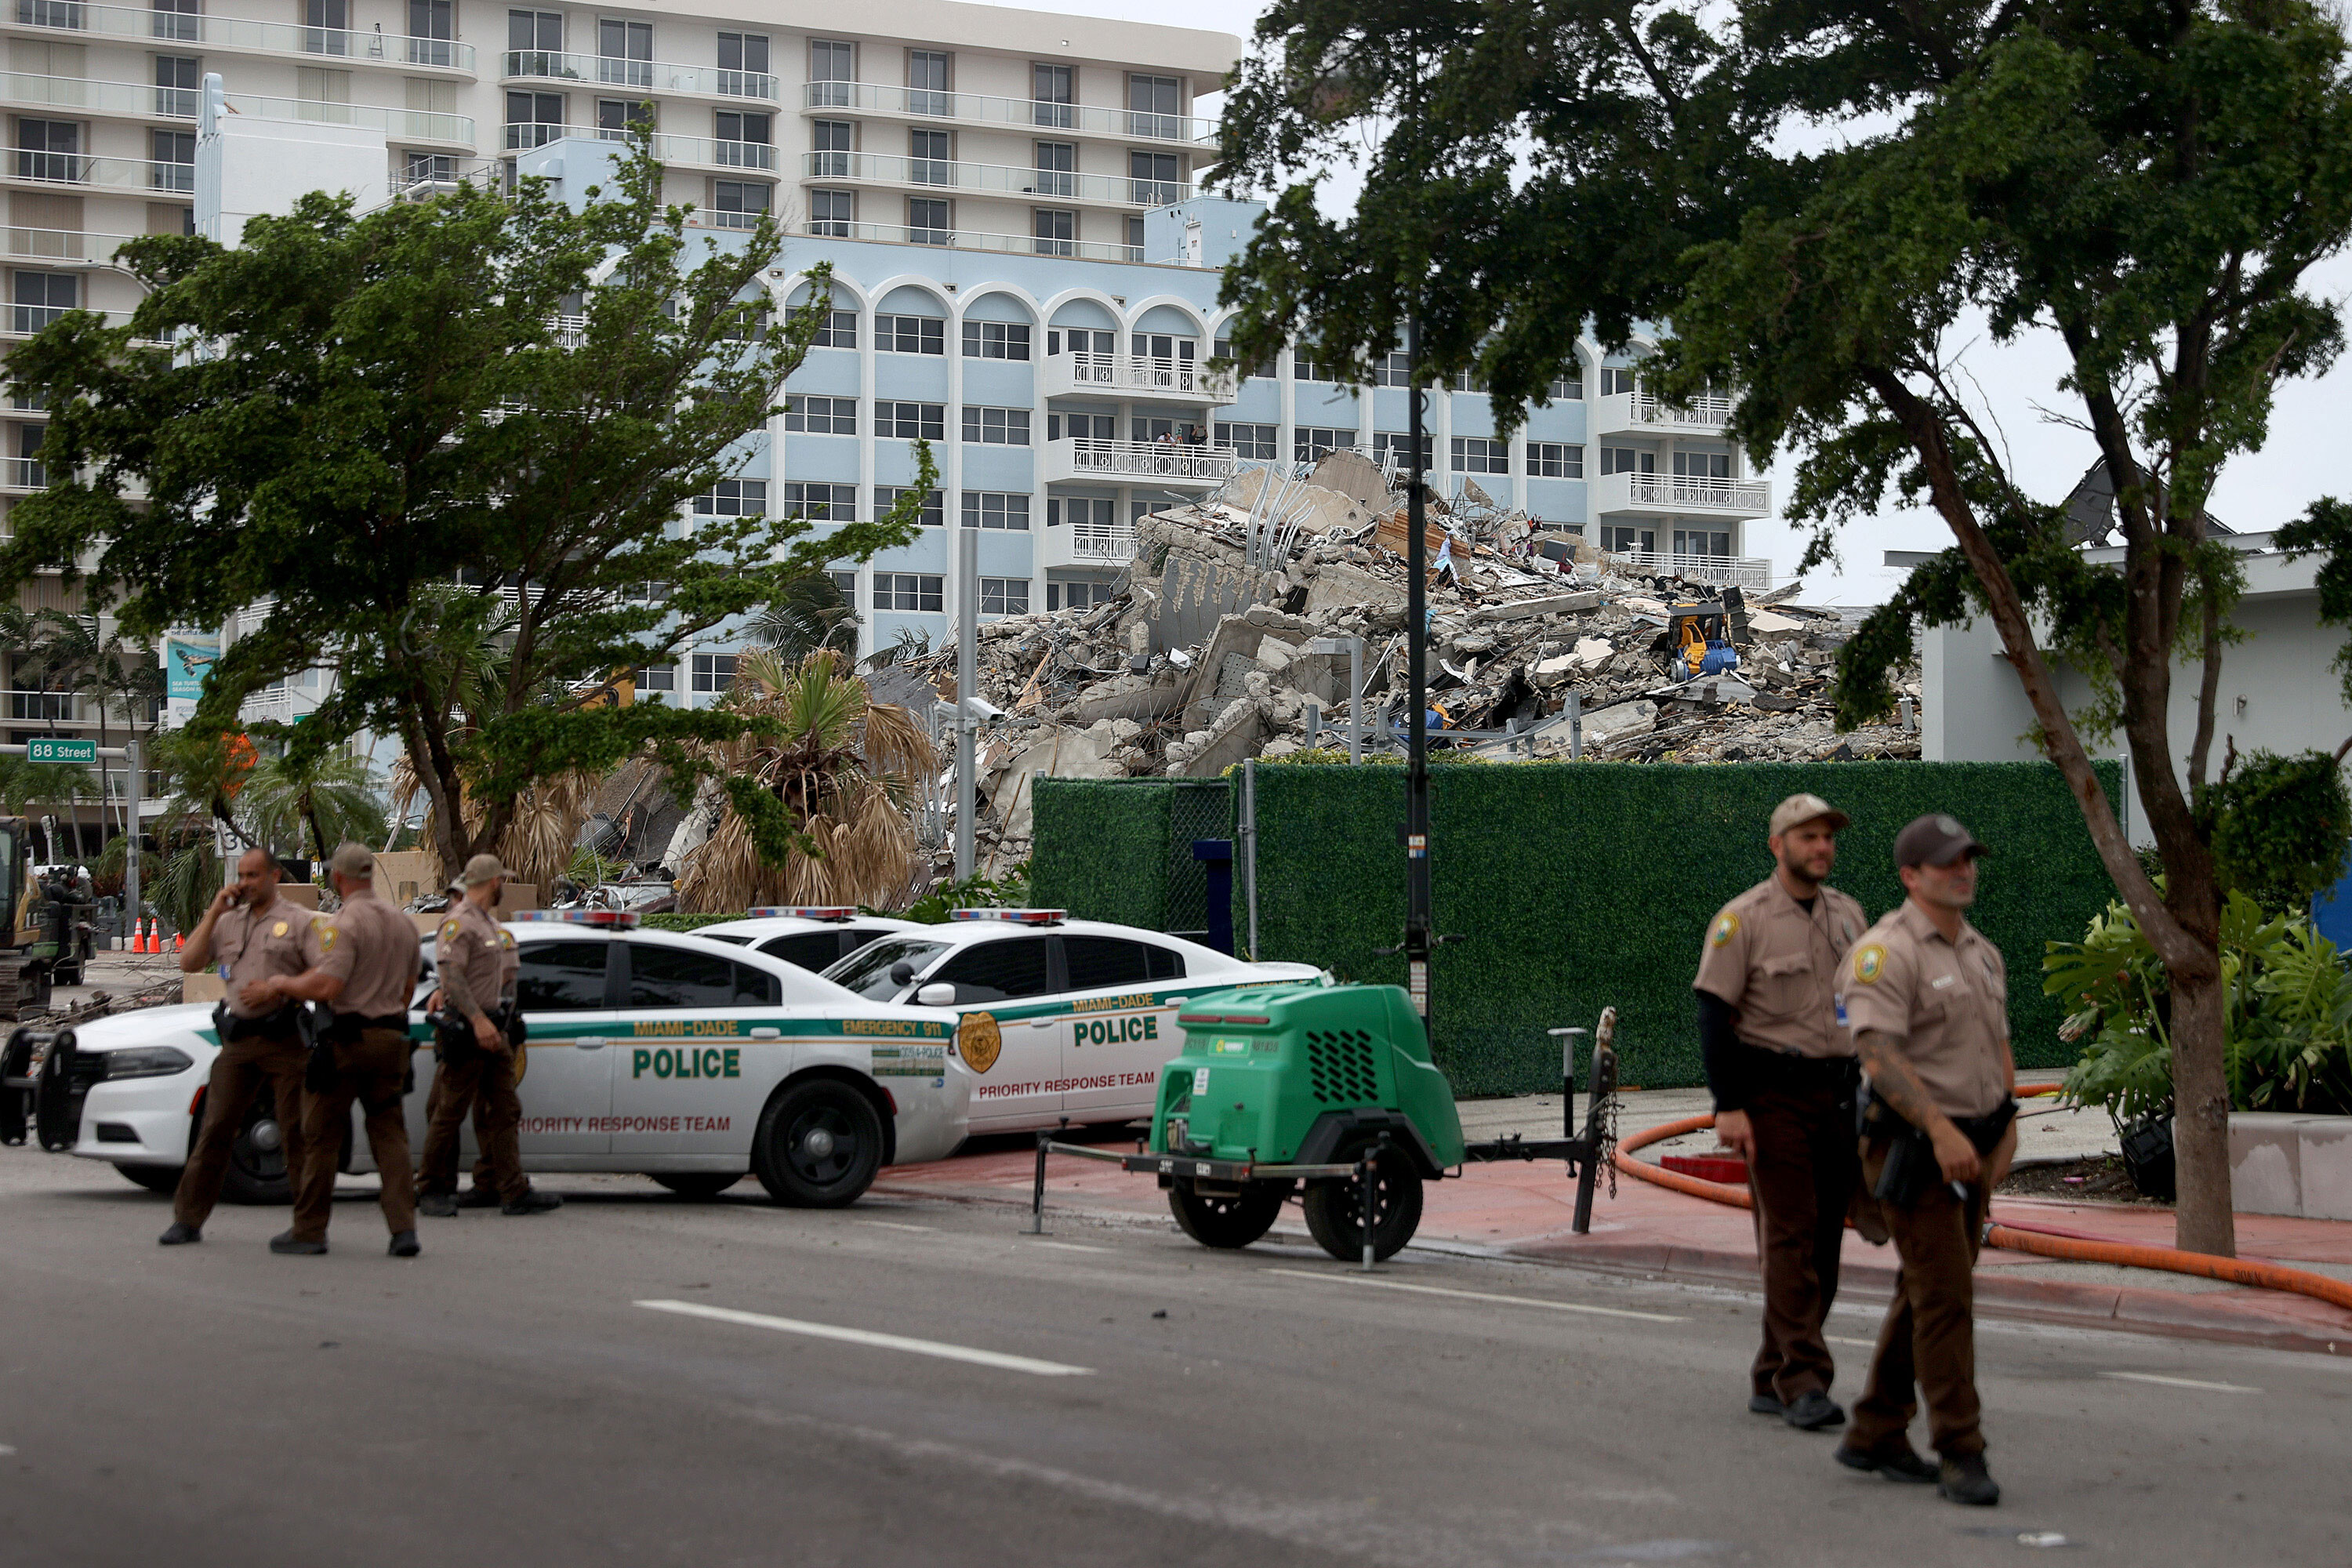 Engineer hired by town of Surfside says his access to the collapse site has been curtailed